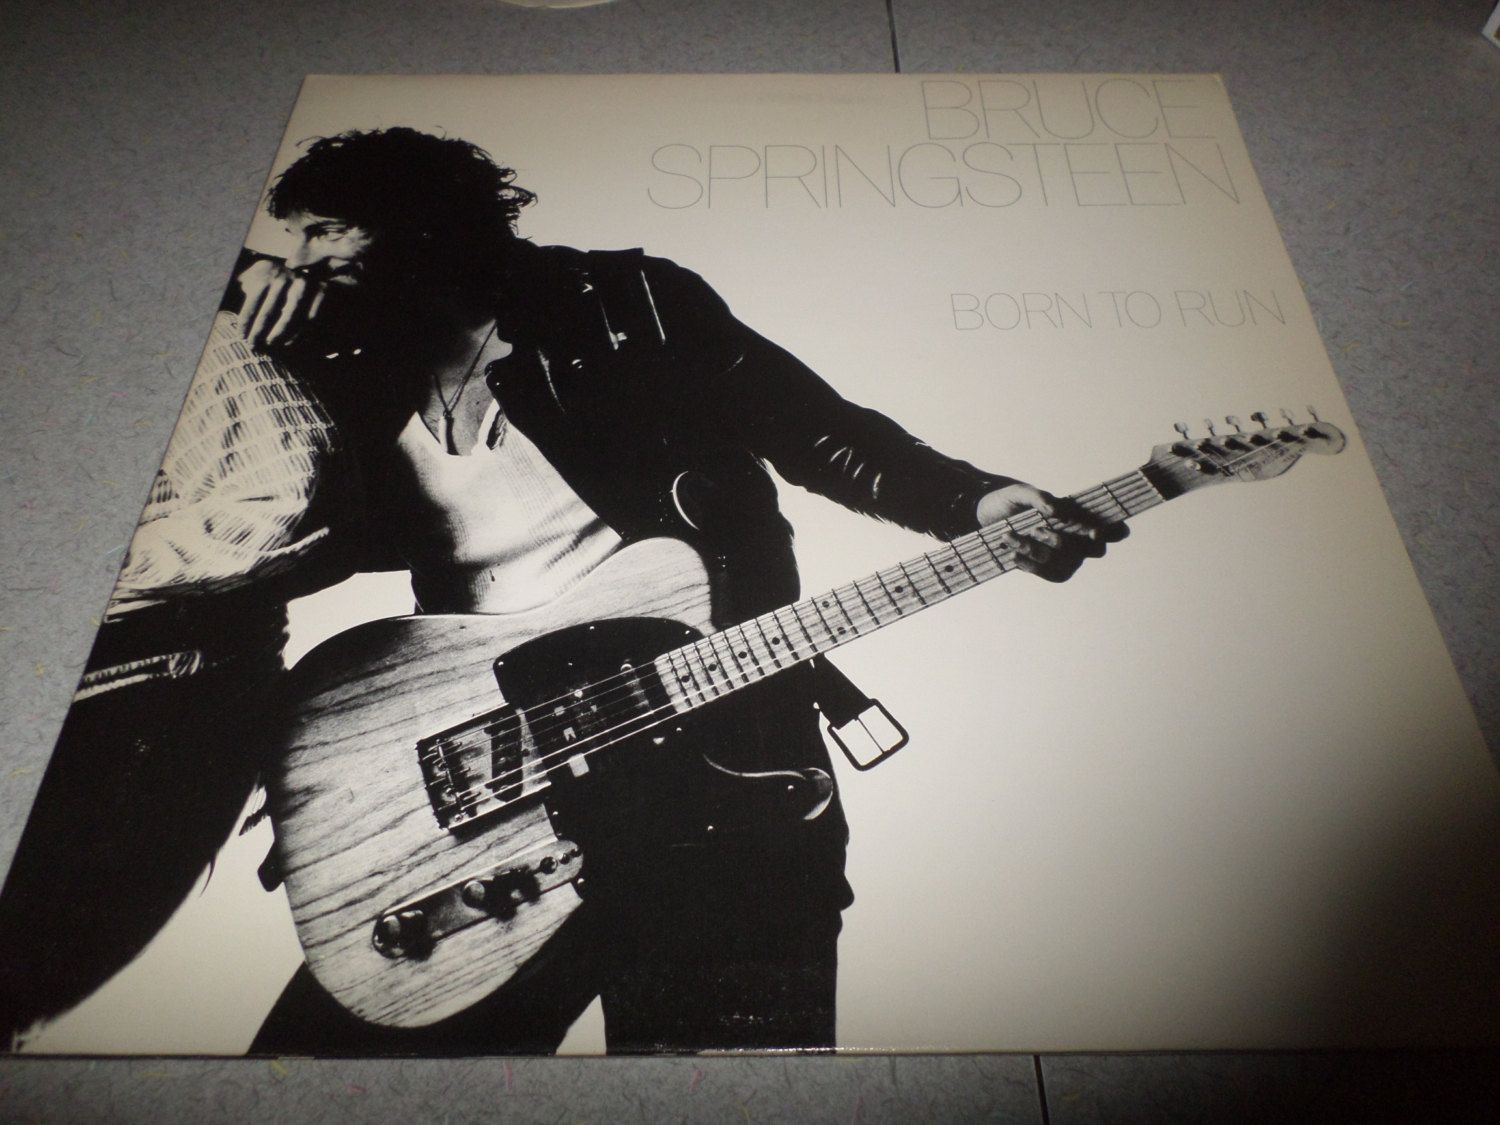 Vintage 1975 Lp Record Born To Run Bruce Springsteen Gatefold Cover Columbia Records Near Mint Condition 2580 Bruce Springsteen Born To Run Vinyl Record Album